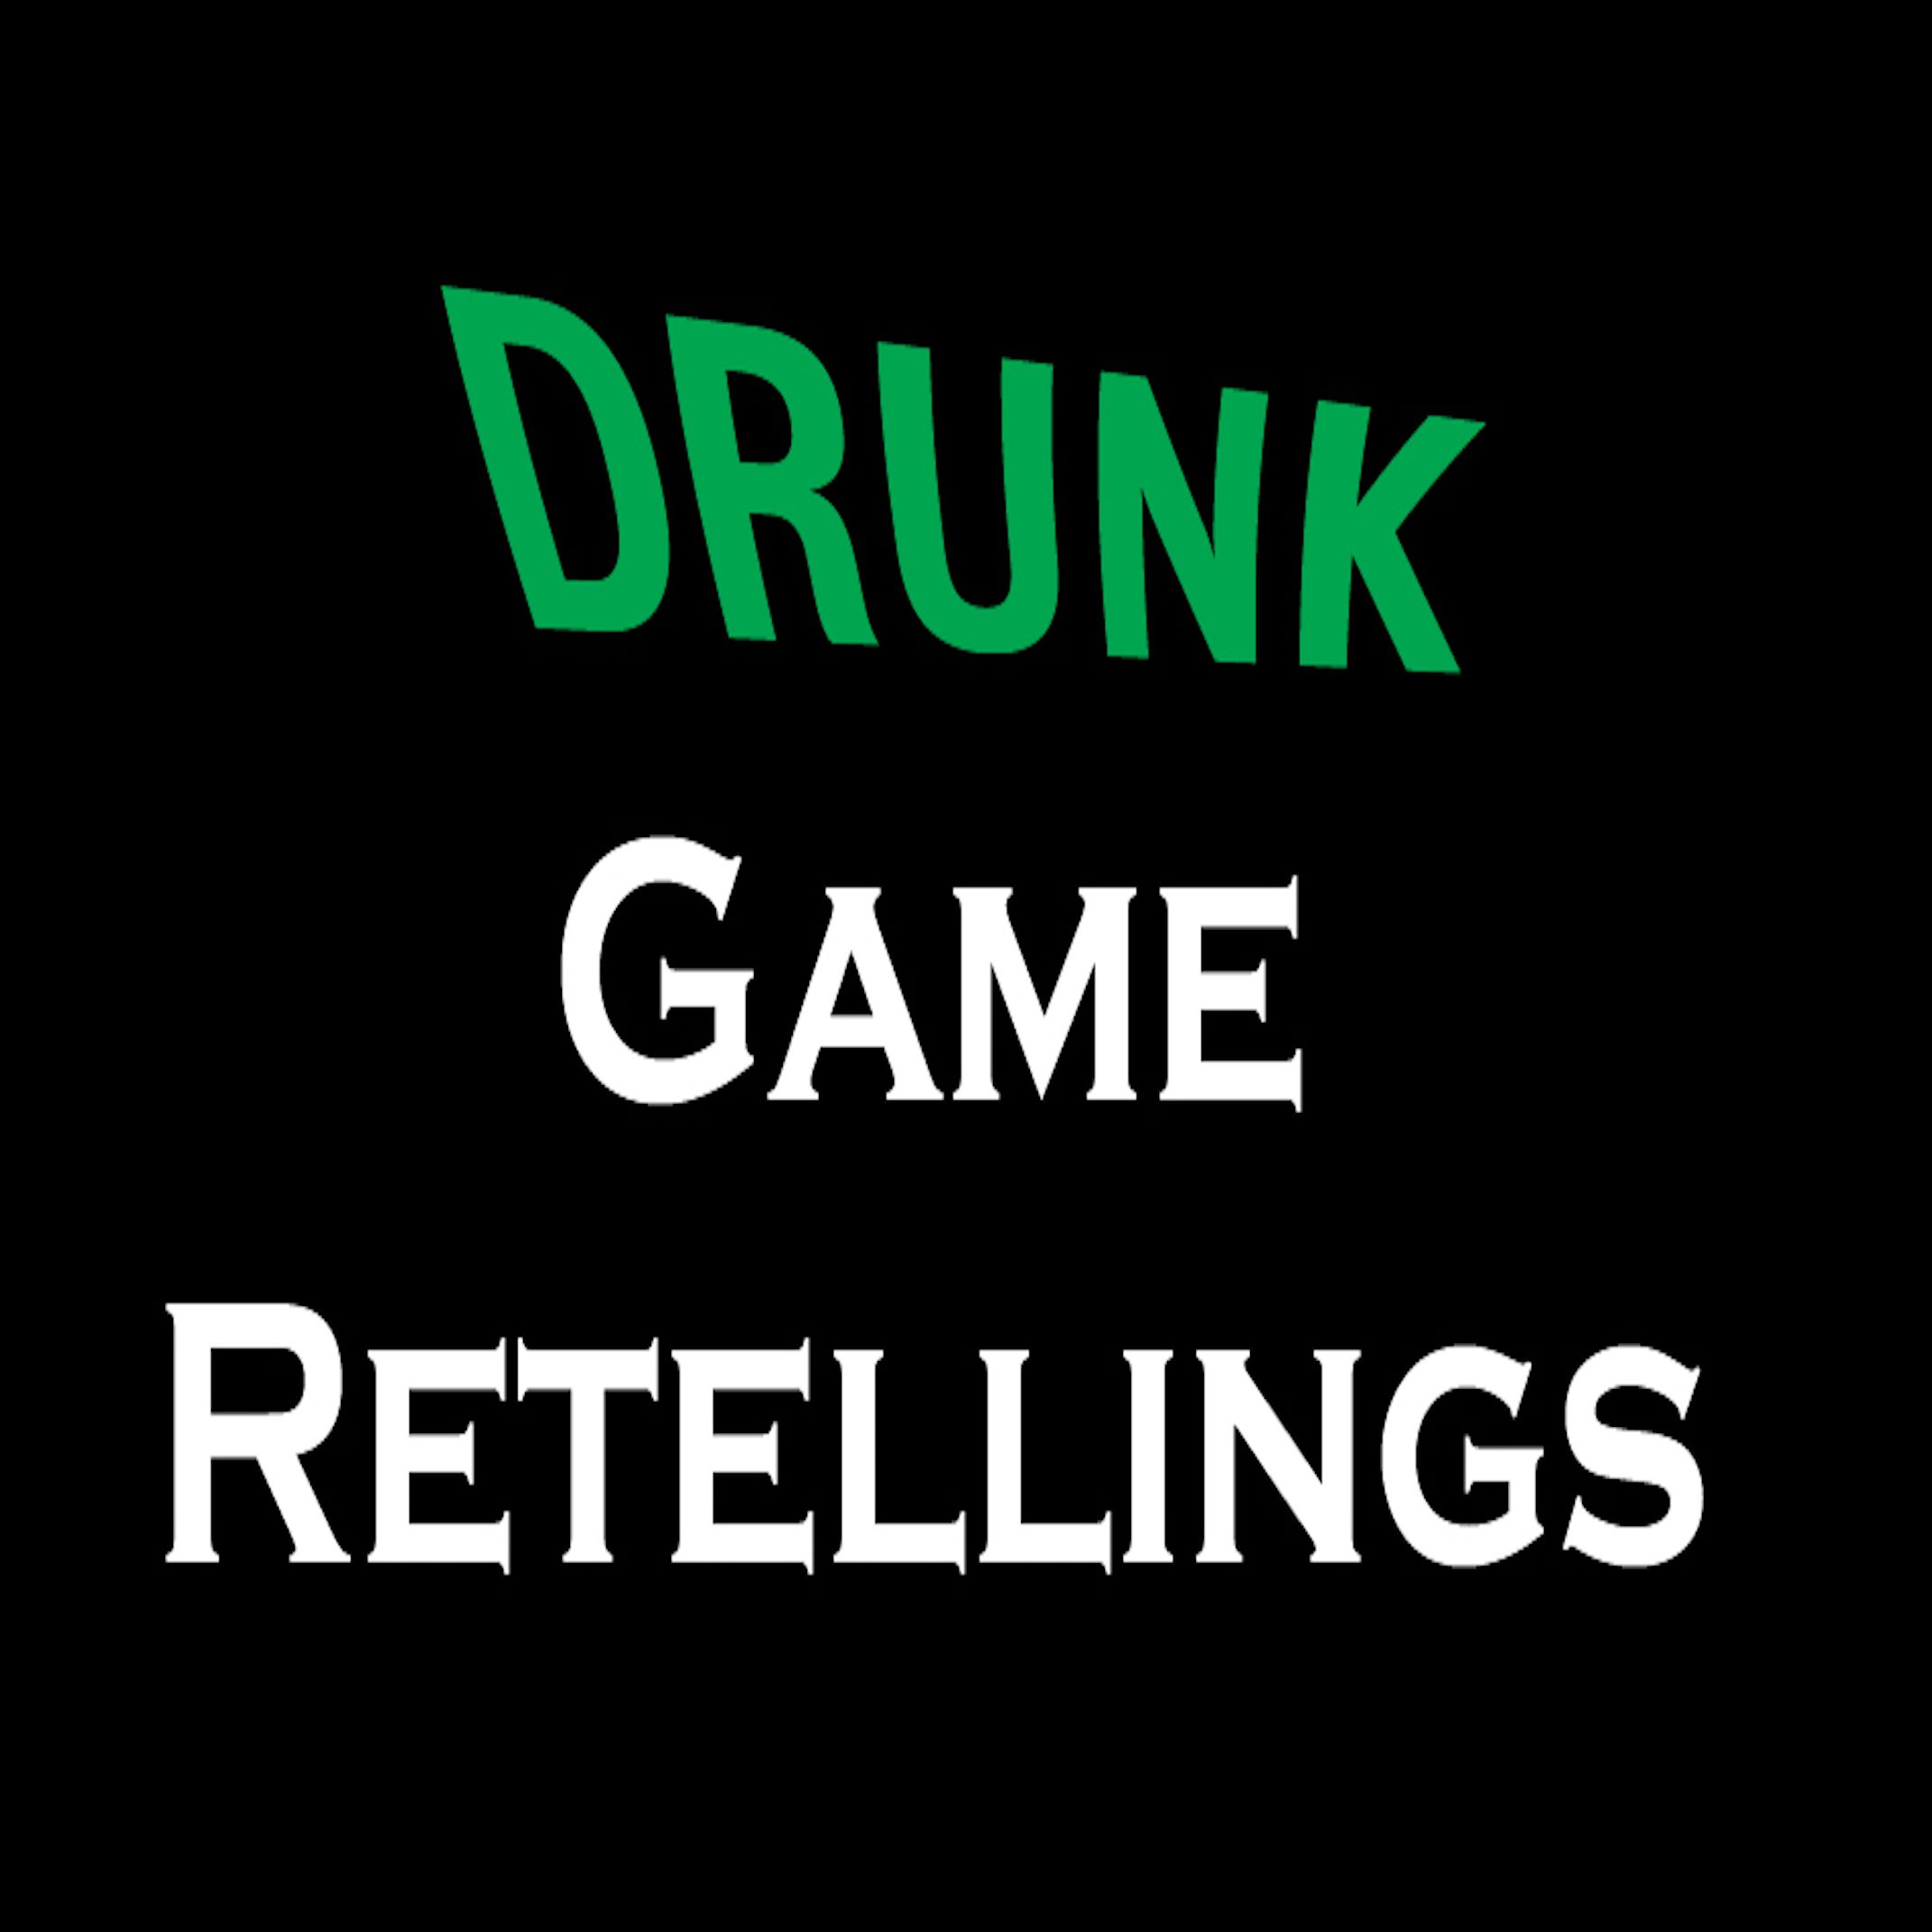 Drunk Game Retellings